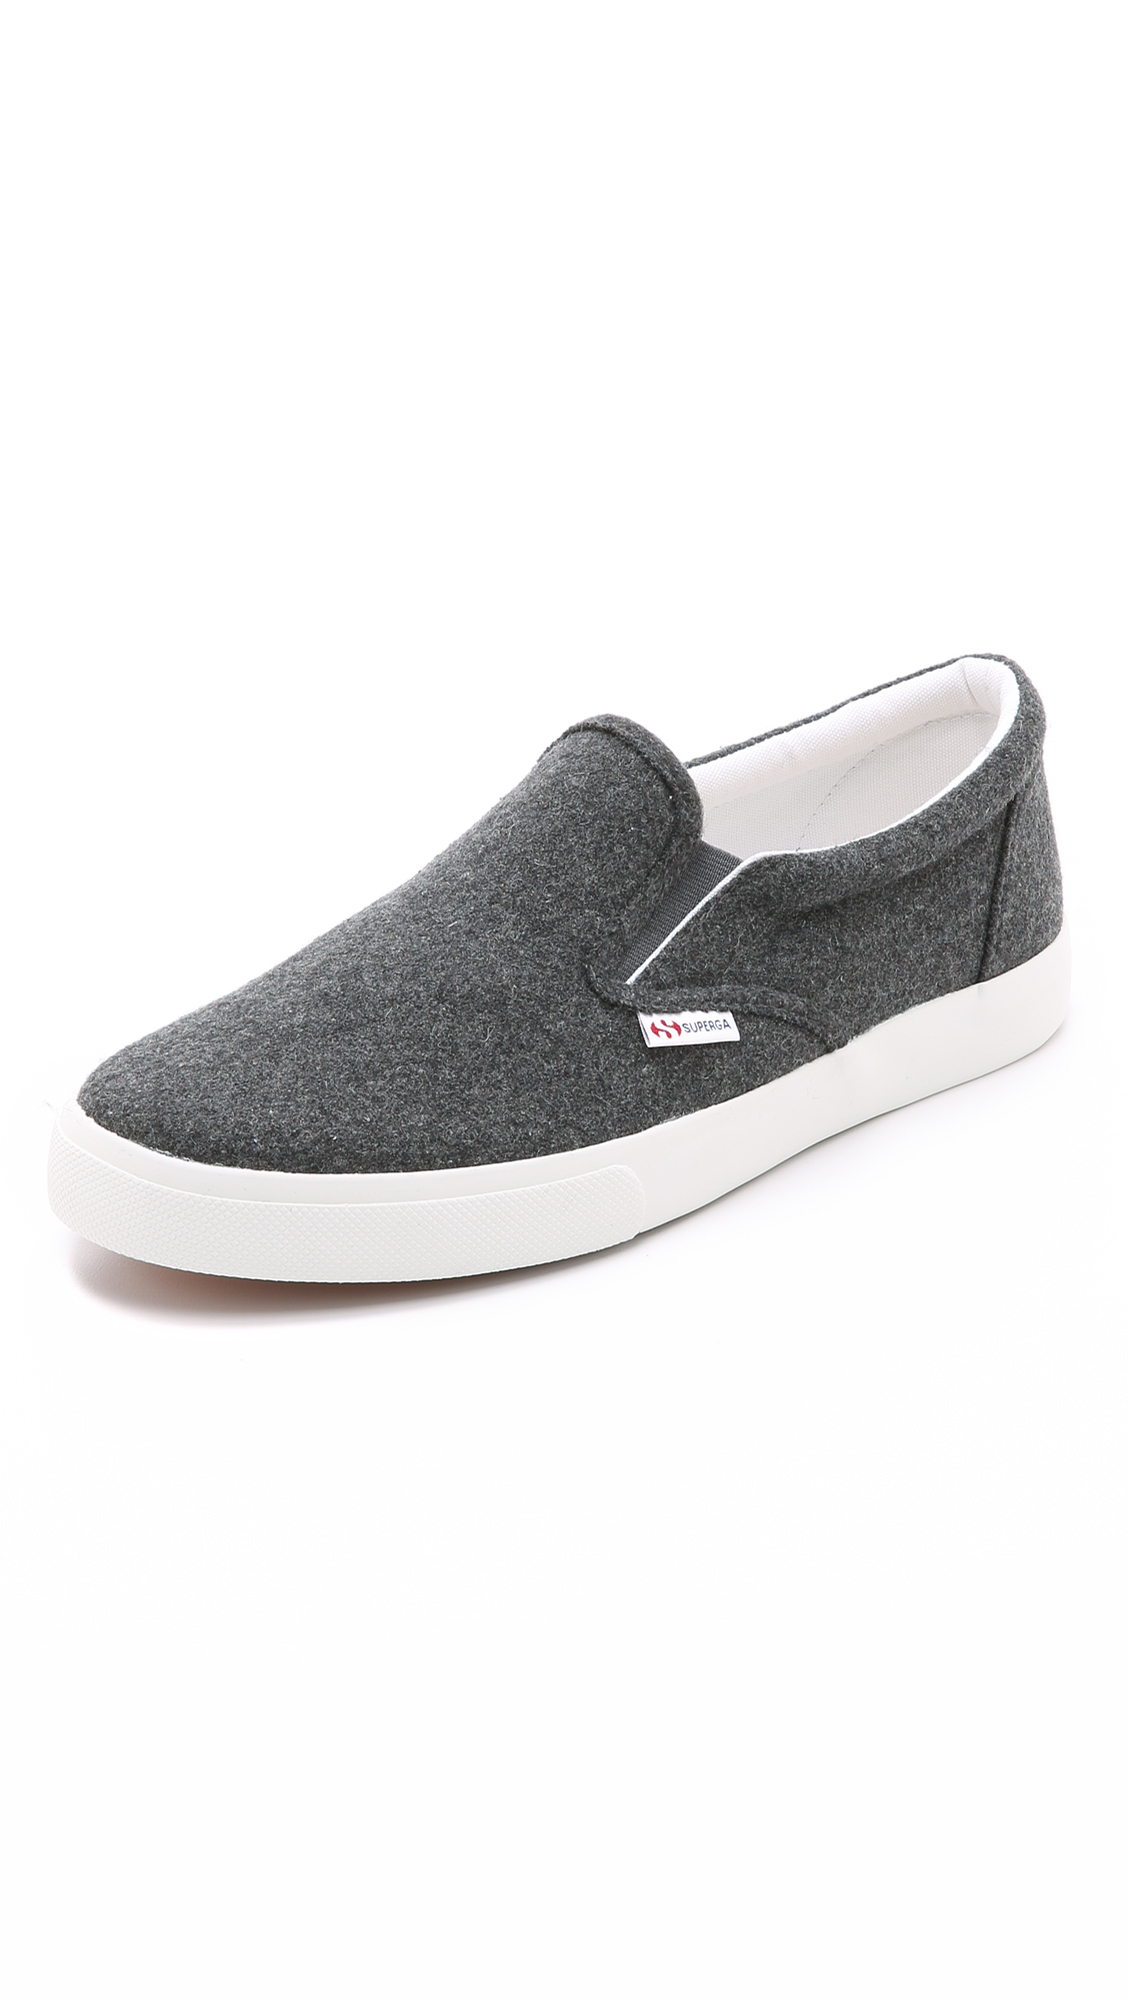 Where To Buy Superga Shoes In Canada